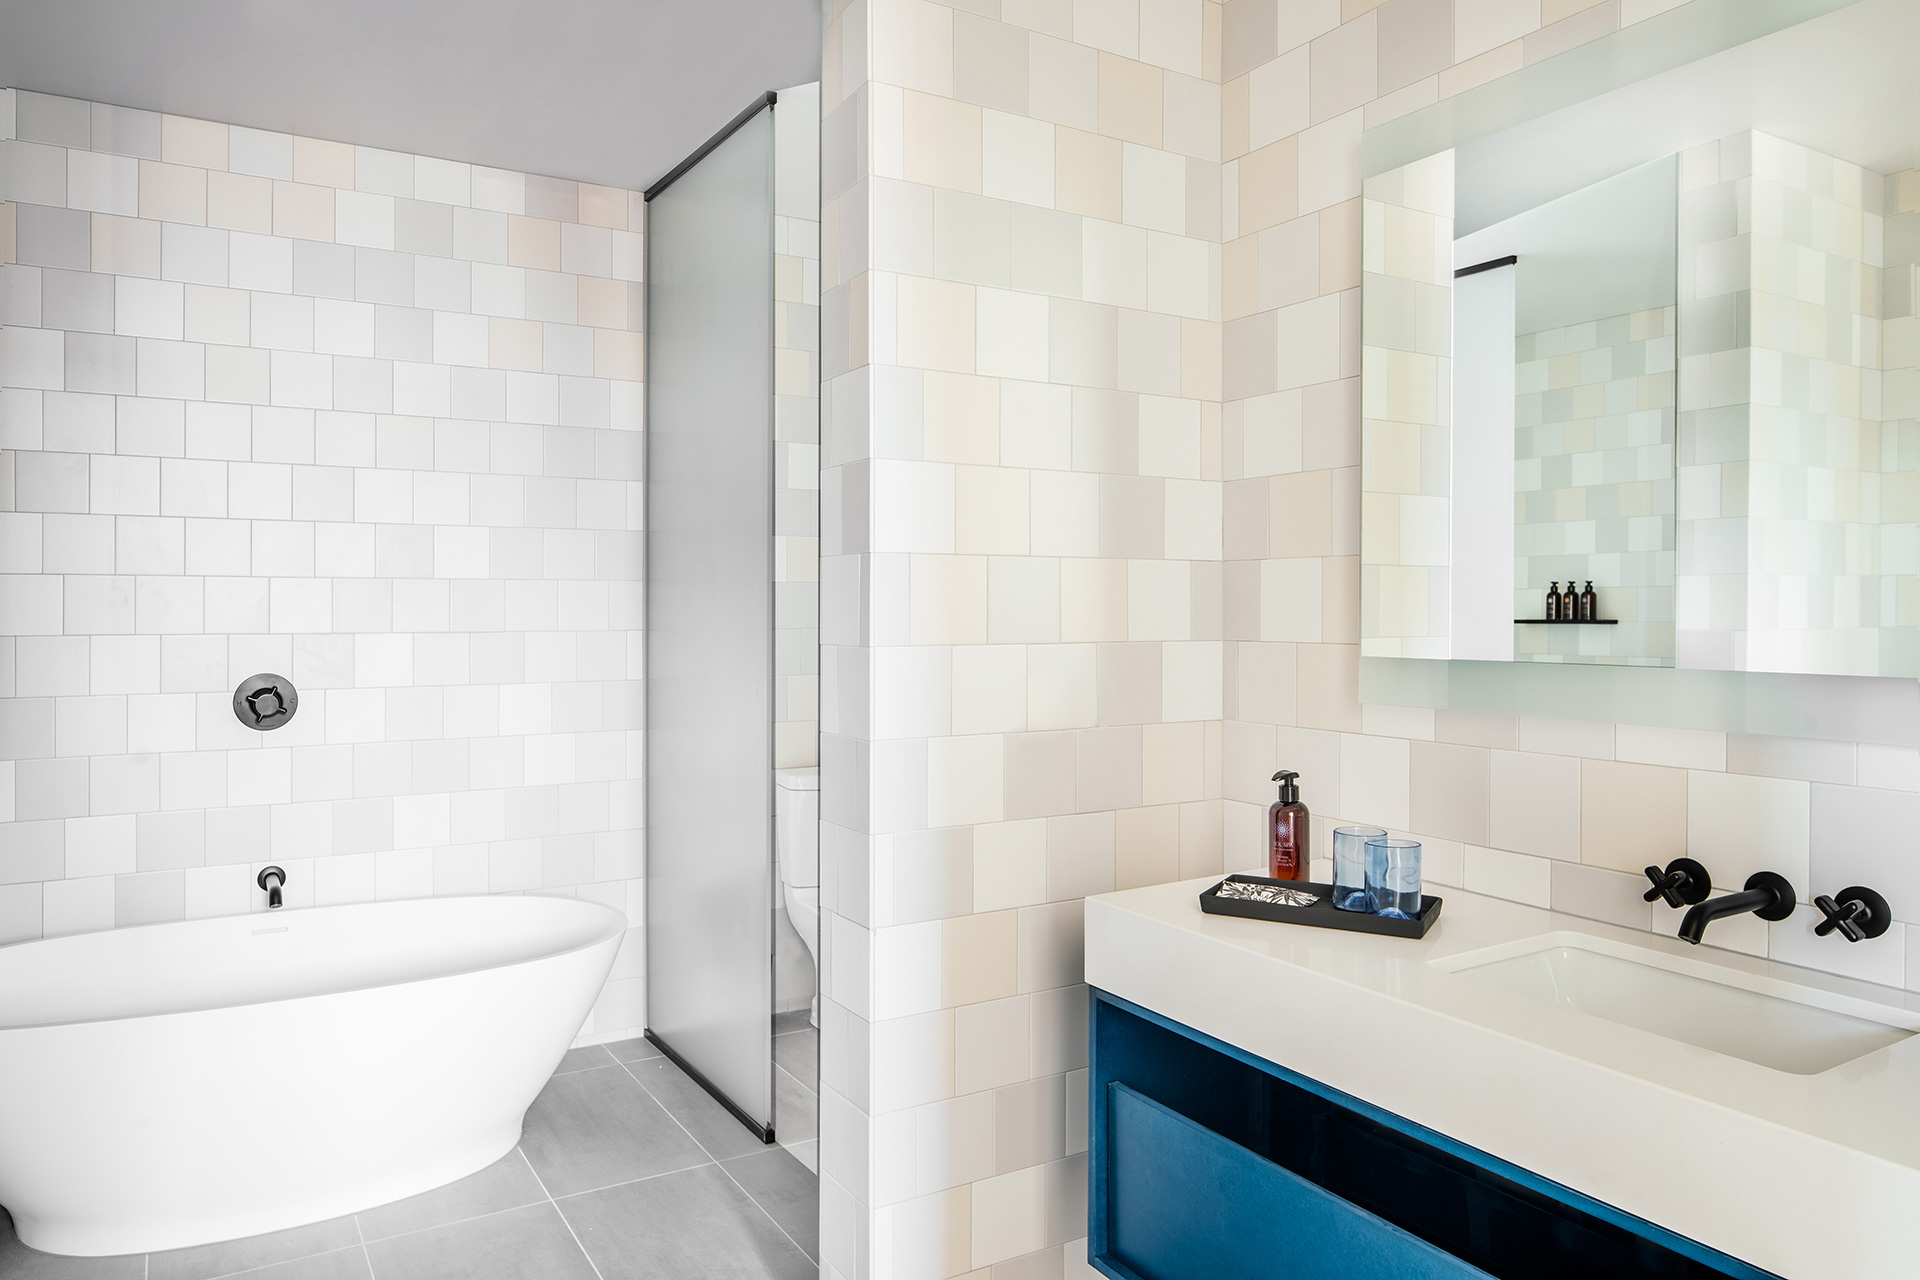 ditail-materiales-arquitectura-Hotel-Mosa-